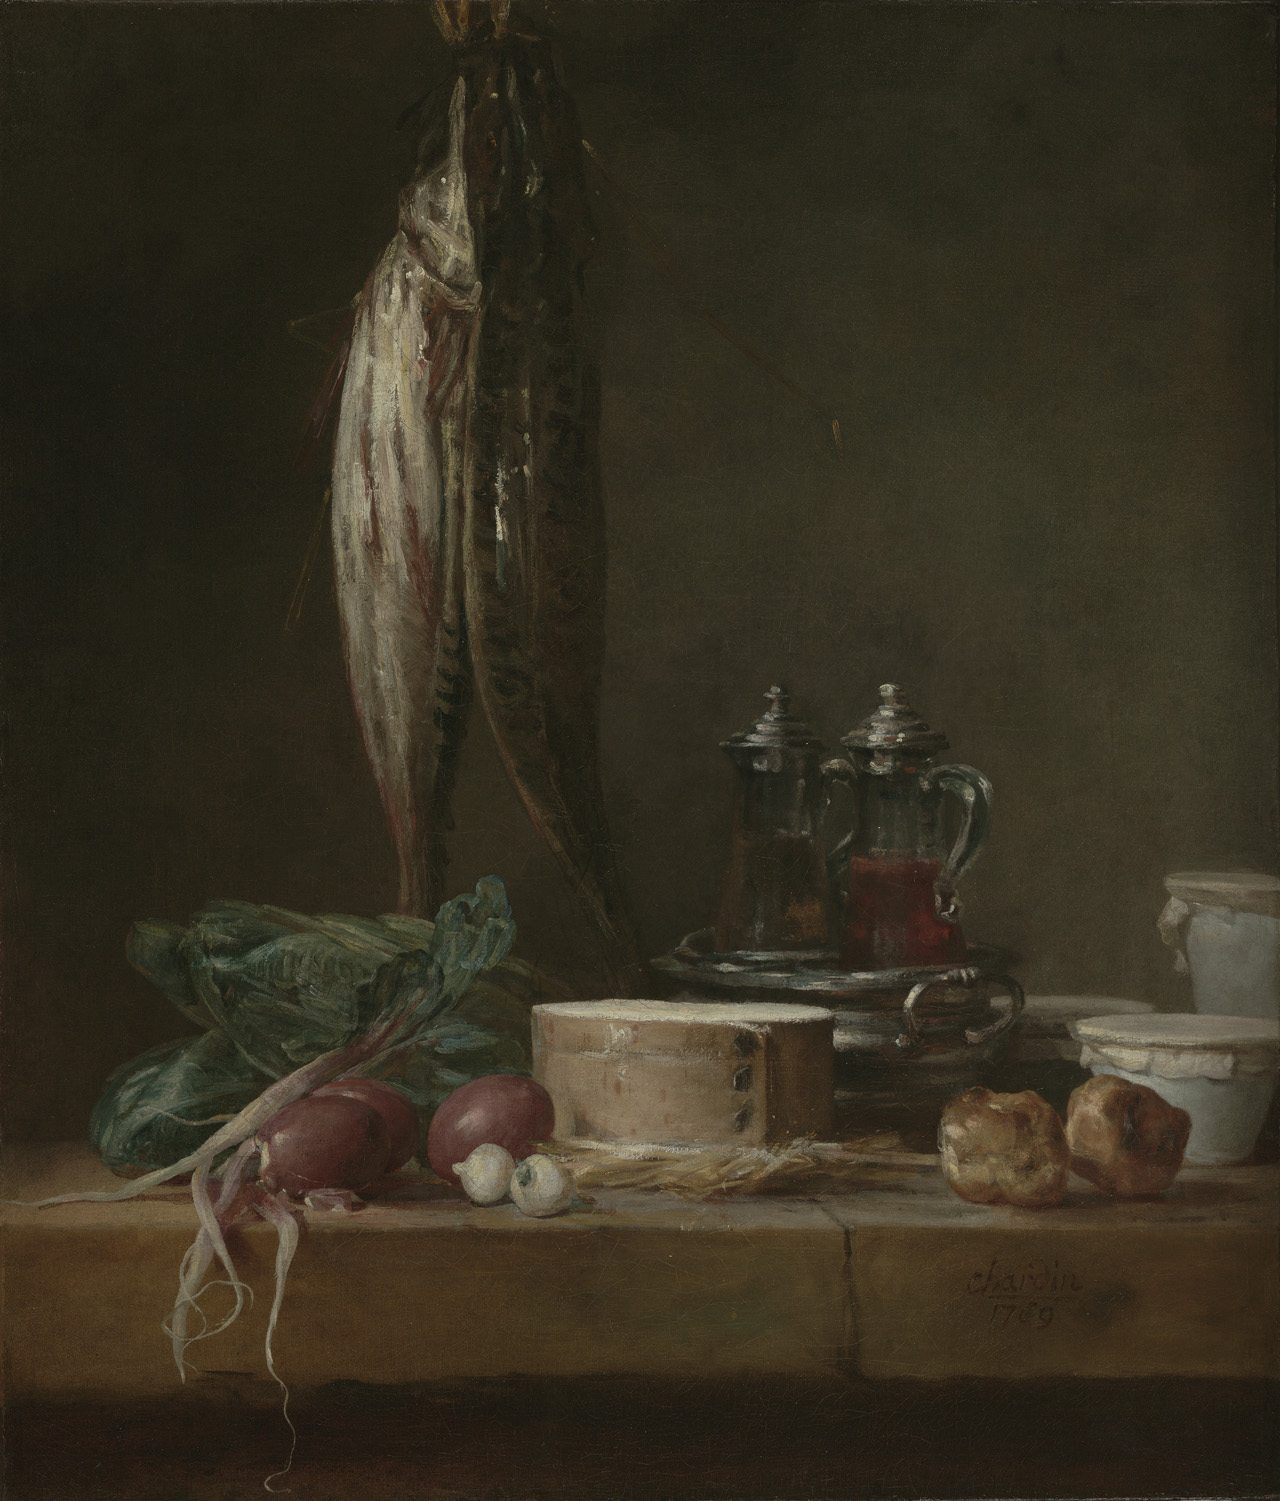 Chardin, Jean-Baptiste-Siméon ~ Still Life with Fish, Vegetables, Gougères, Pots, and Cruets on a Table